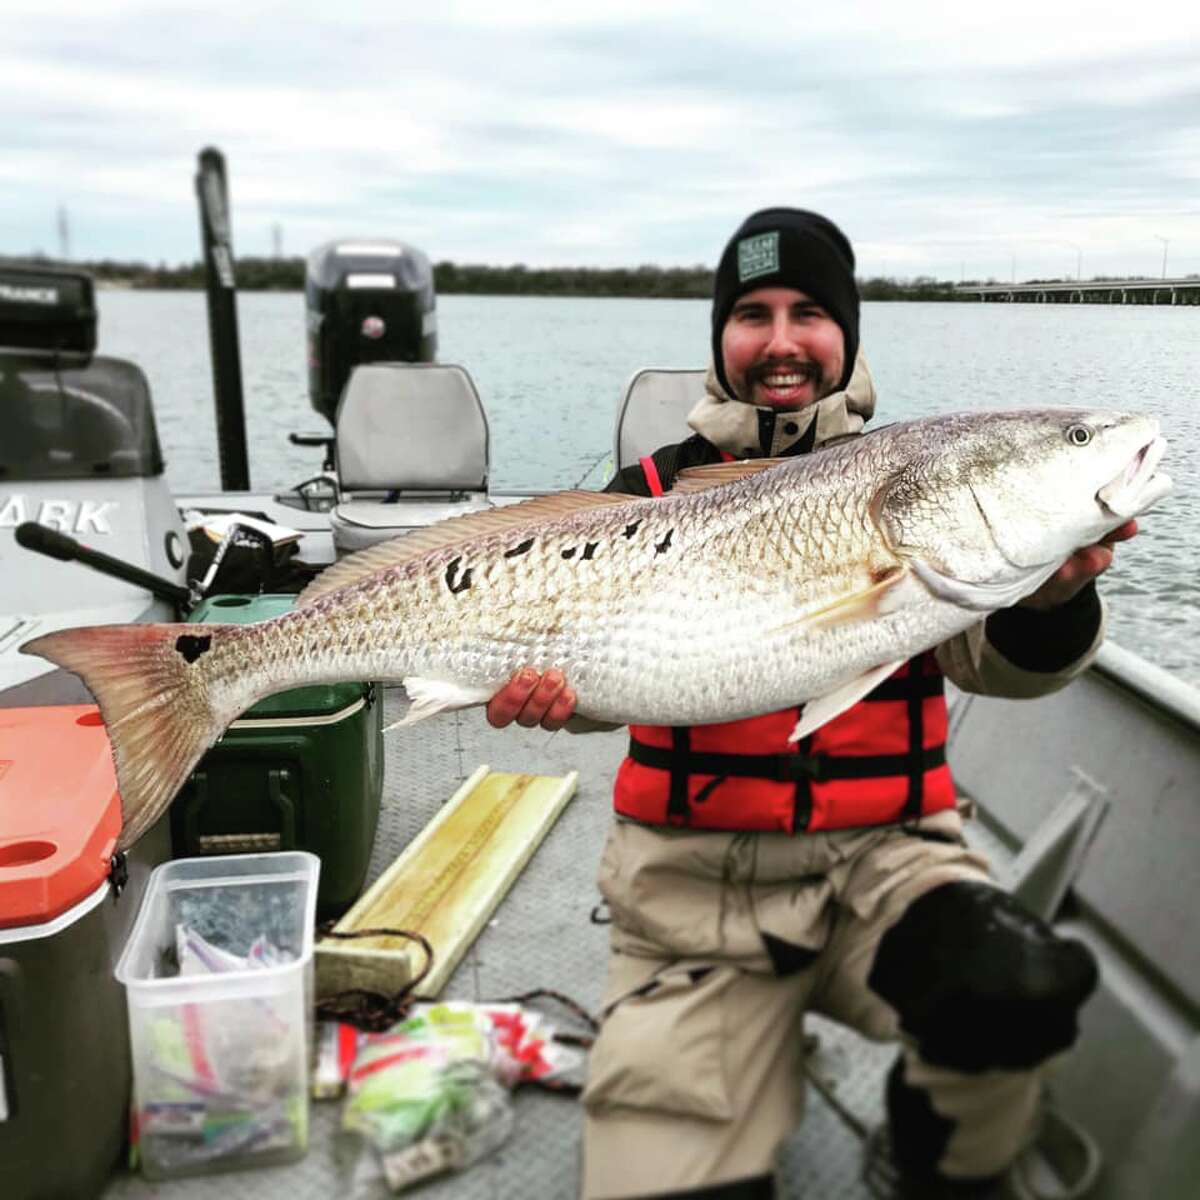 Texas Parks and Wildlife recently poured nearly 600,000 red drum fish into Braunig and Calavaras lakes to help keep the population high.